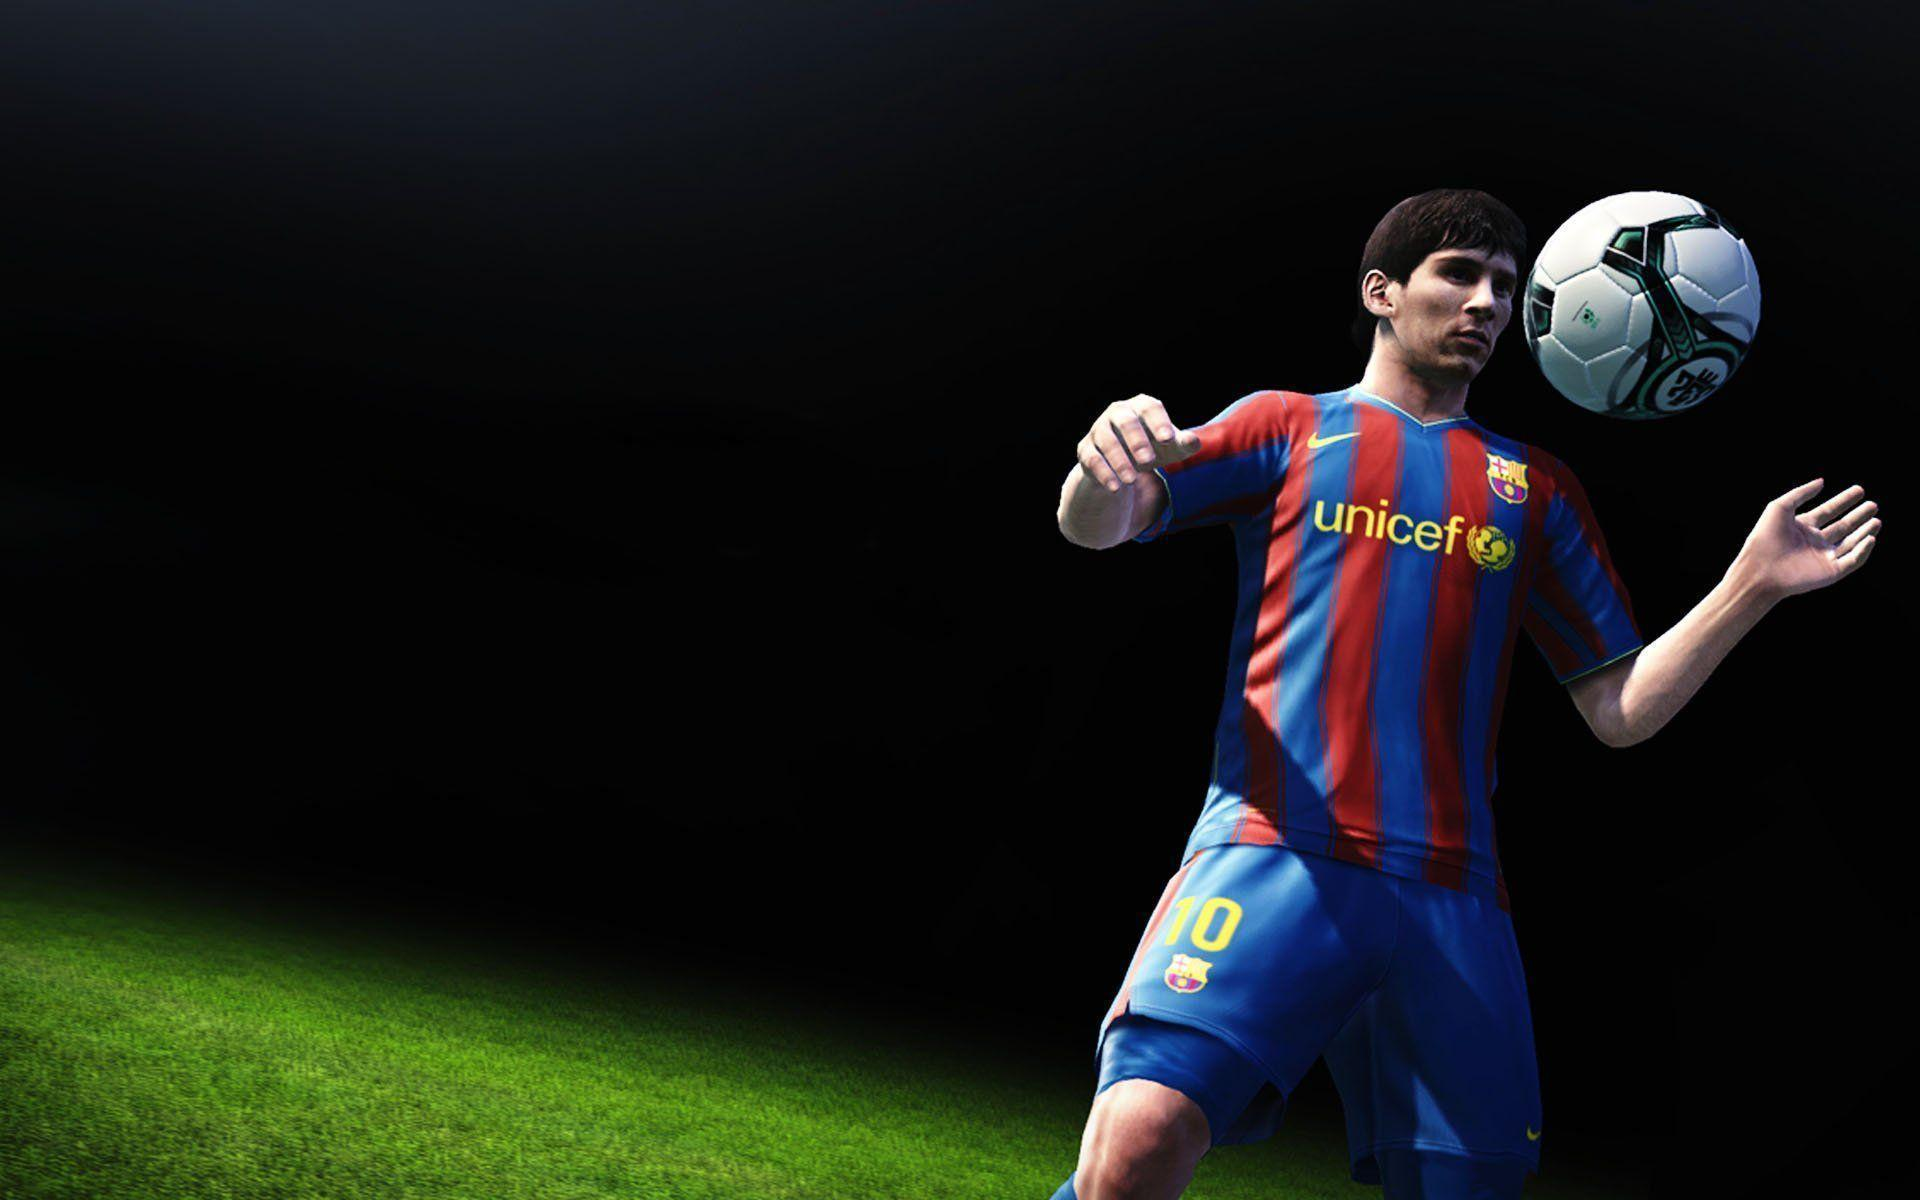 Lionel Messi In FIFA Wallpapers #12817 Wallpaper | High Resolution ...